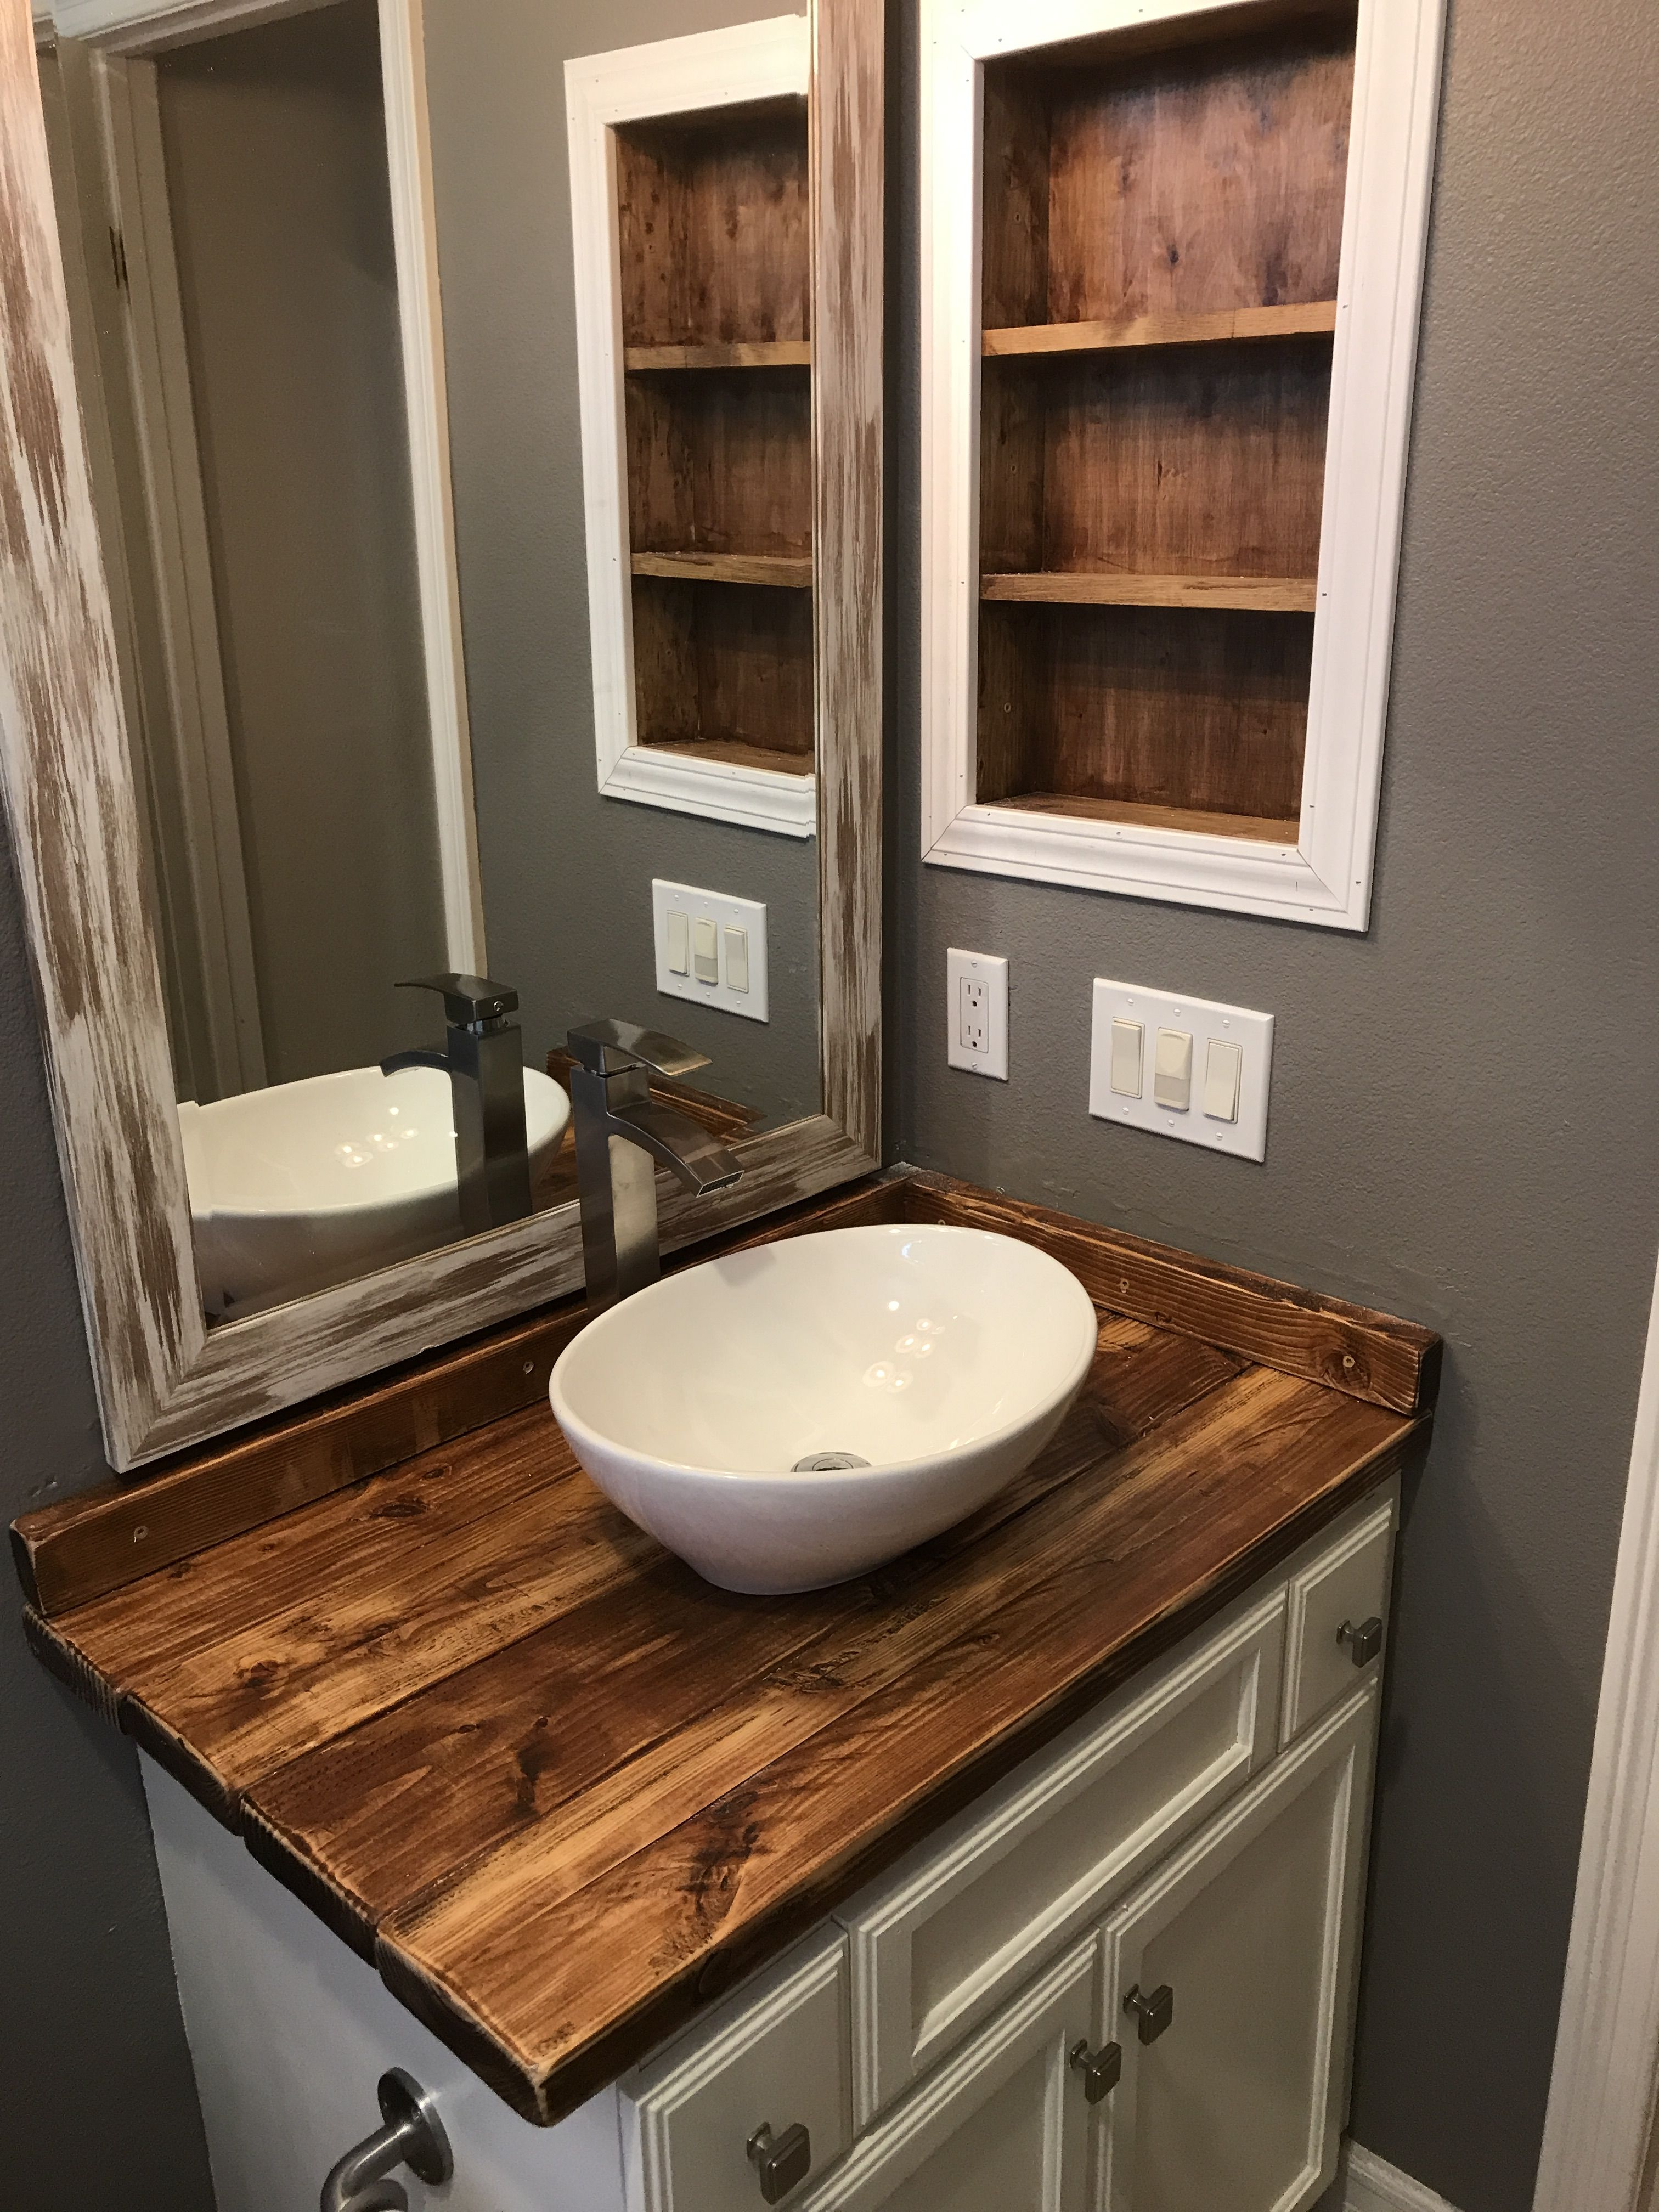 Diy Rustic Wood Countertop And Vessel Sink. Bathroom